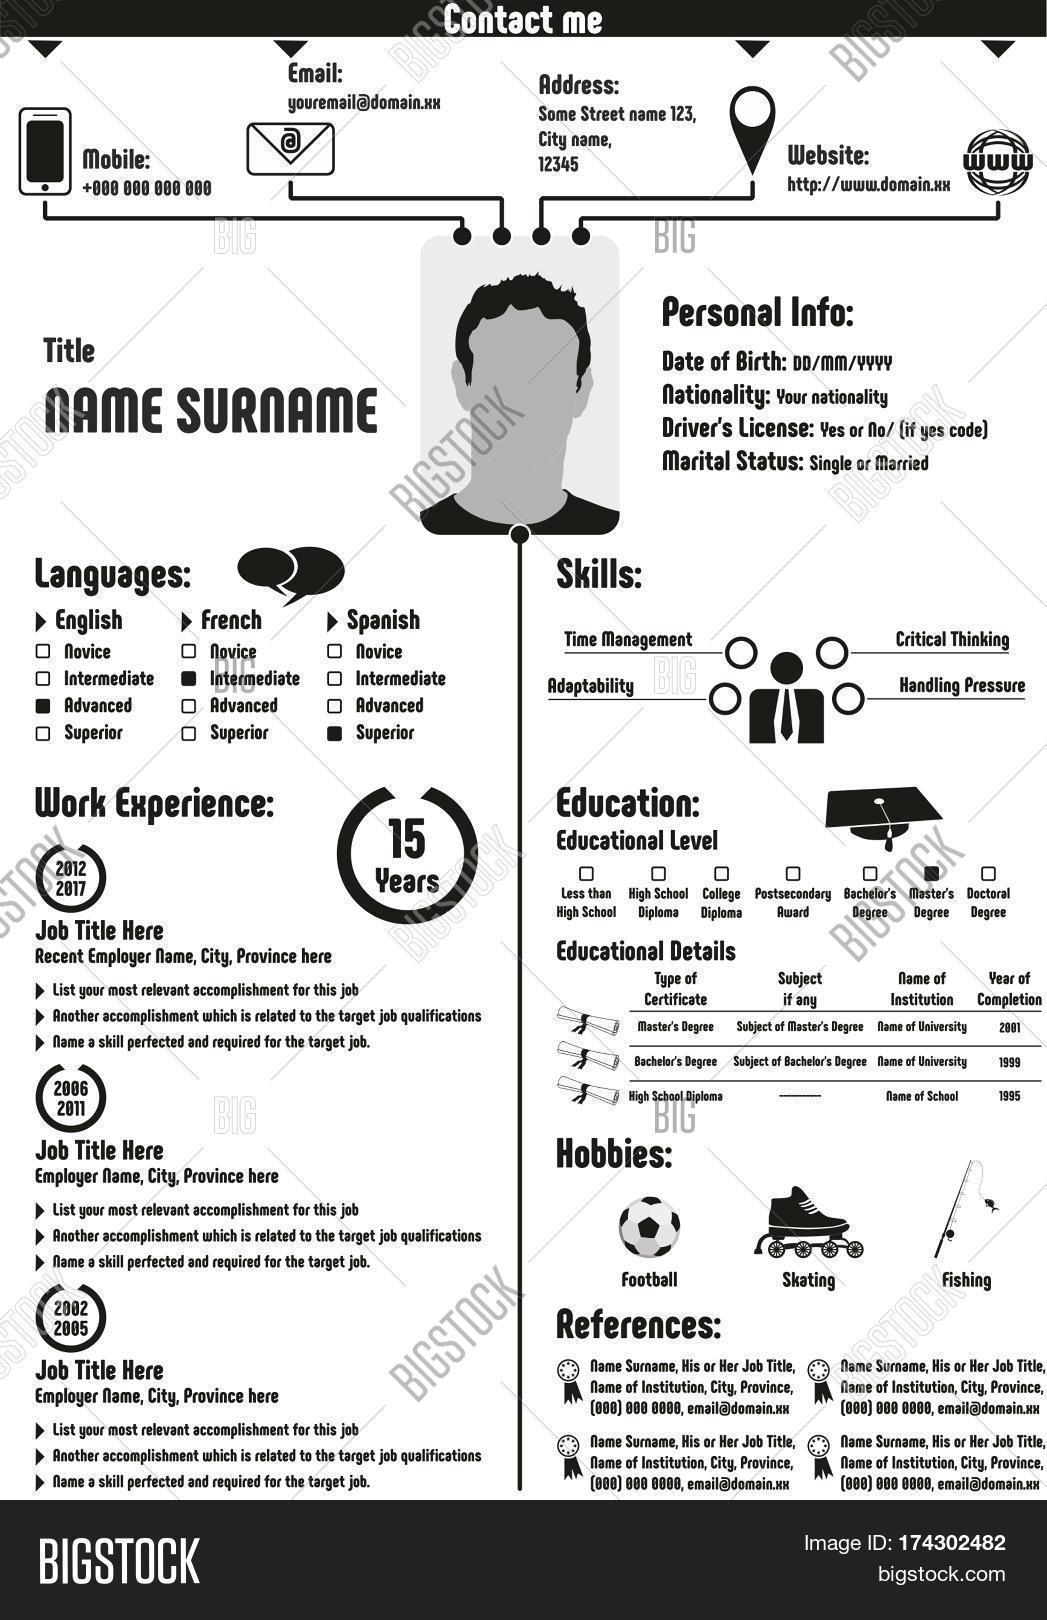 cv curriculum vitae image  u0026 photo  free trial